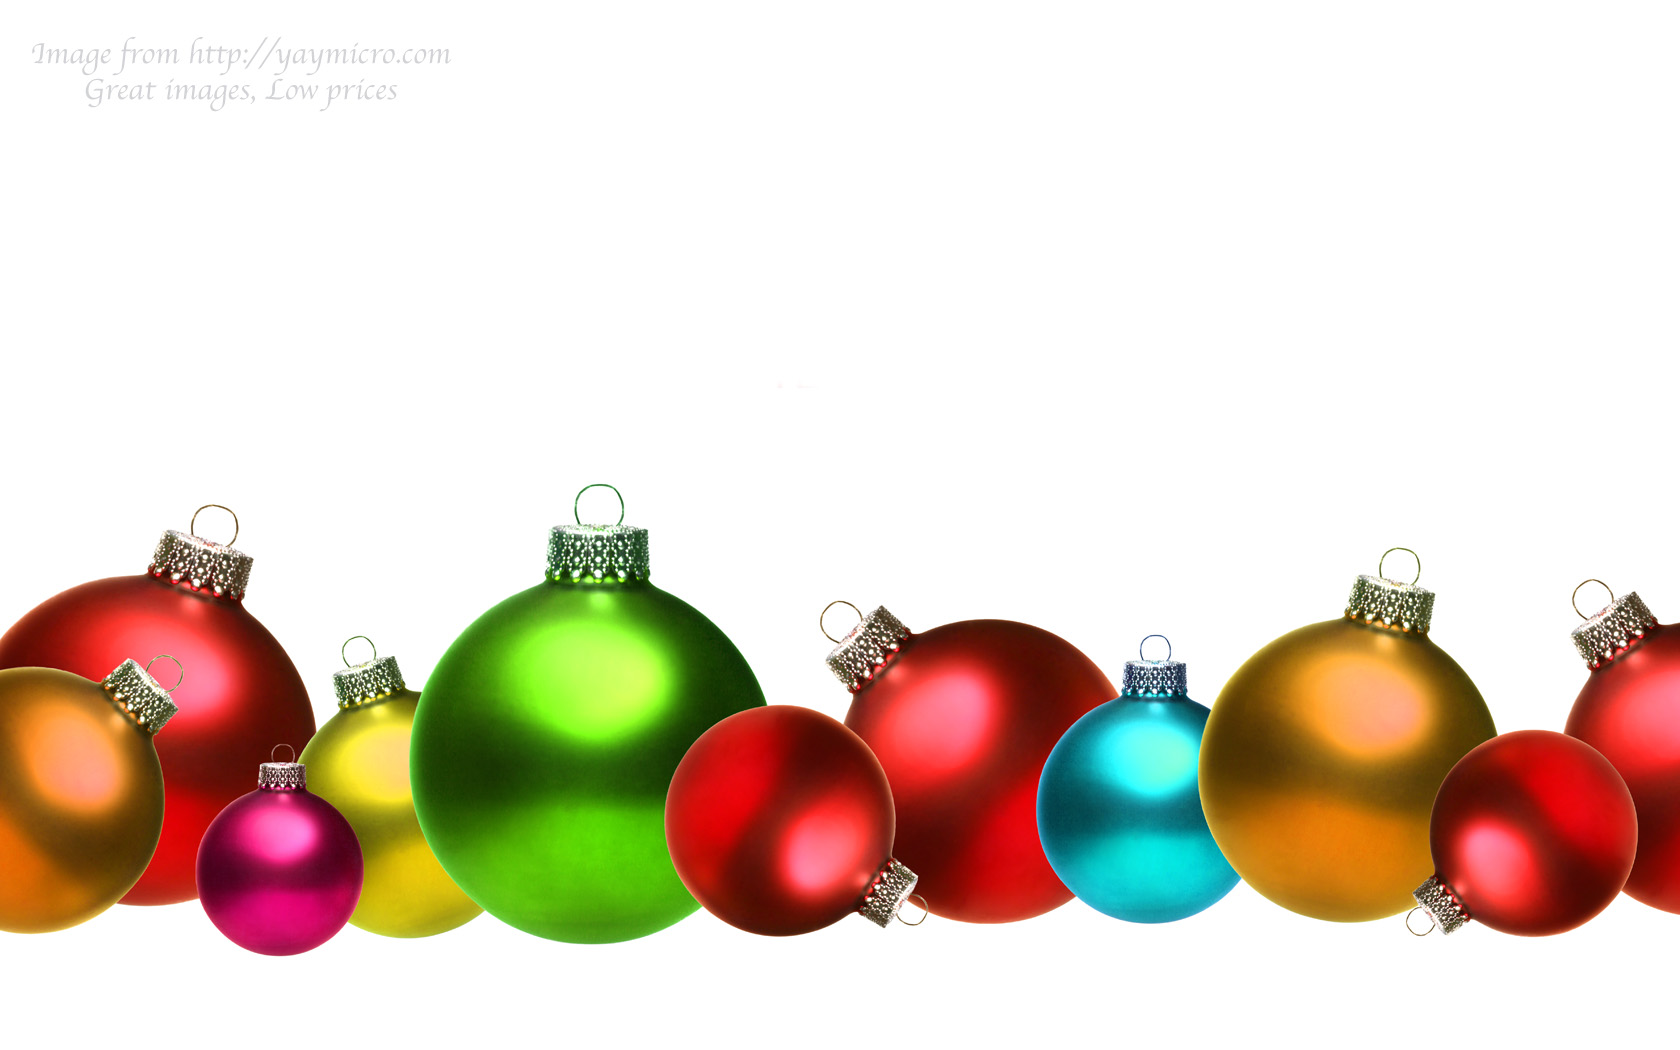 Christmas ornaments clipart jpeg svg Christmas Bulbs Clipart & Christmas Bulbs Clip Art Images ... svg